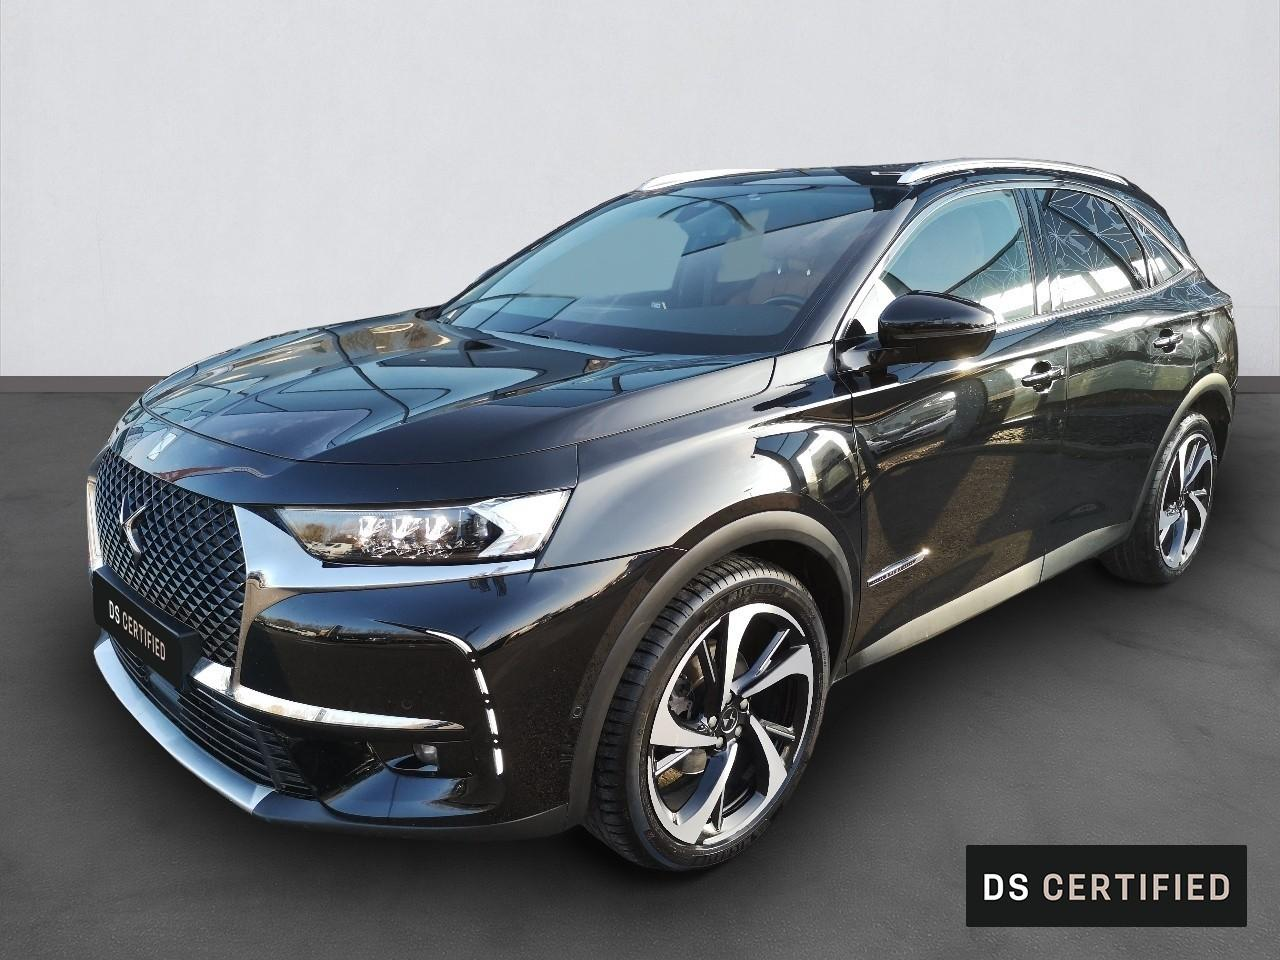 Ds DS 7 Crossback PureTech 180ch Executive Automatique